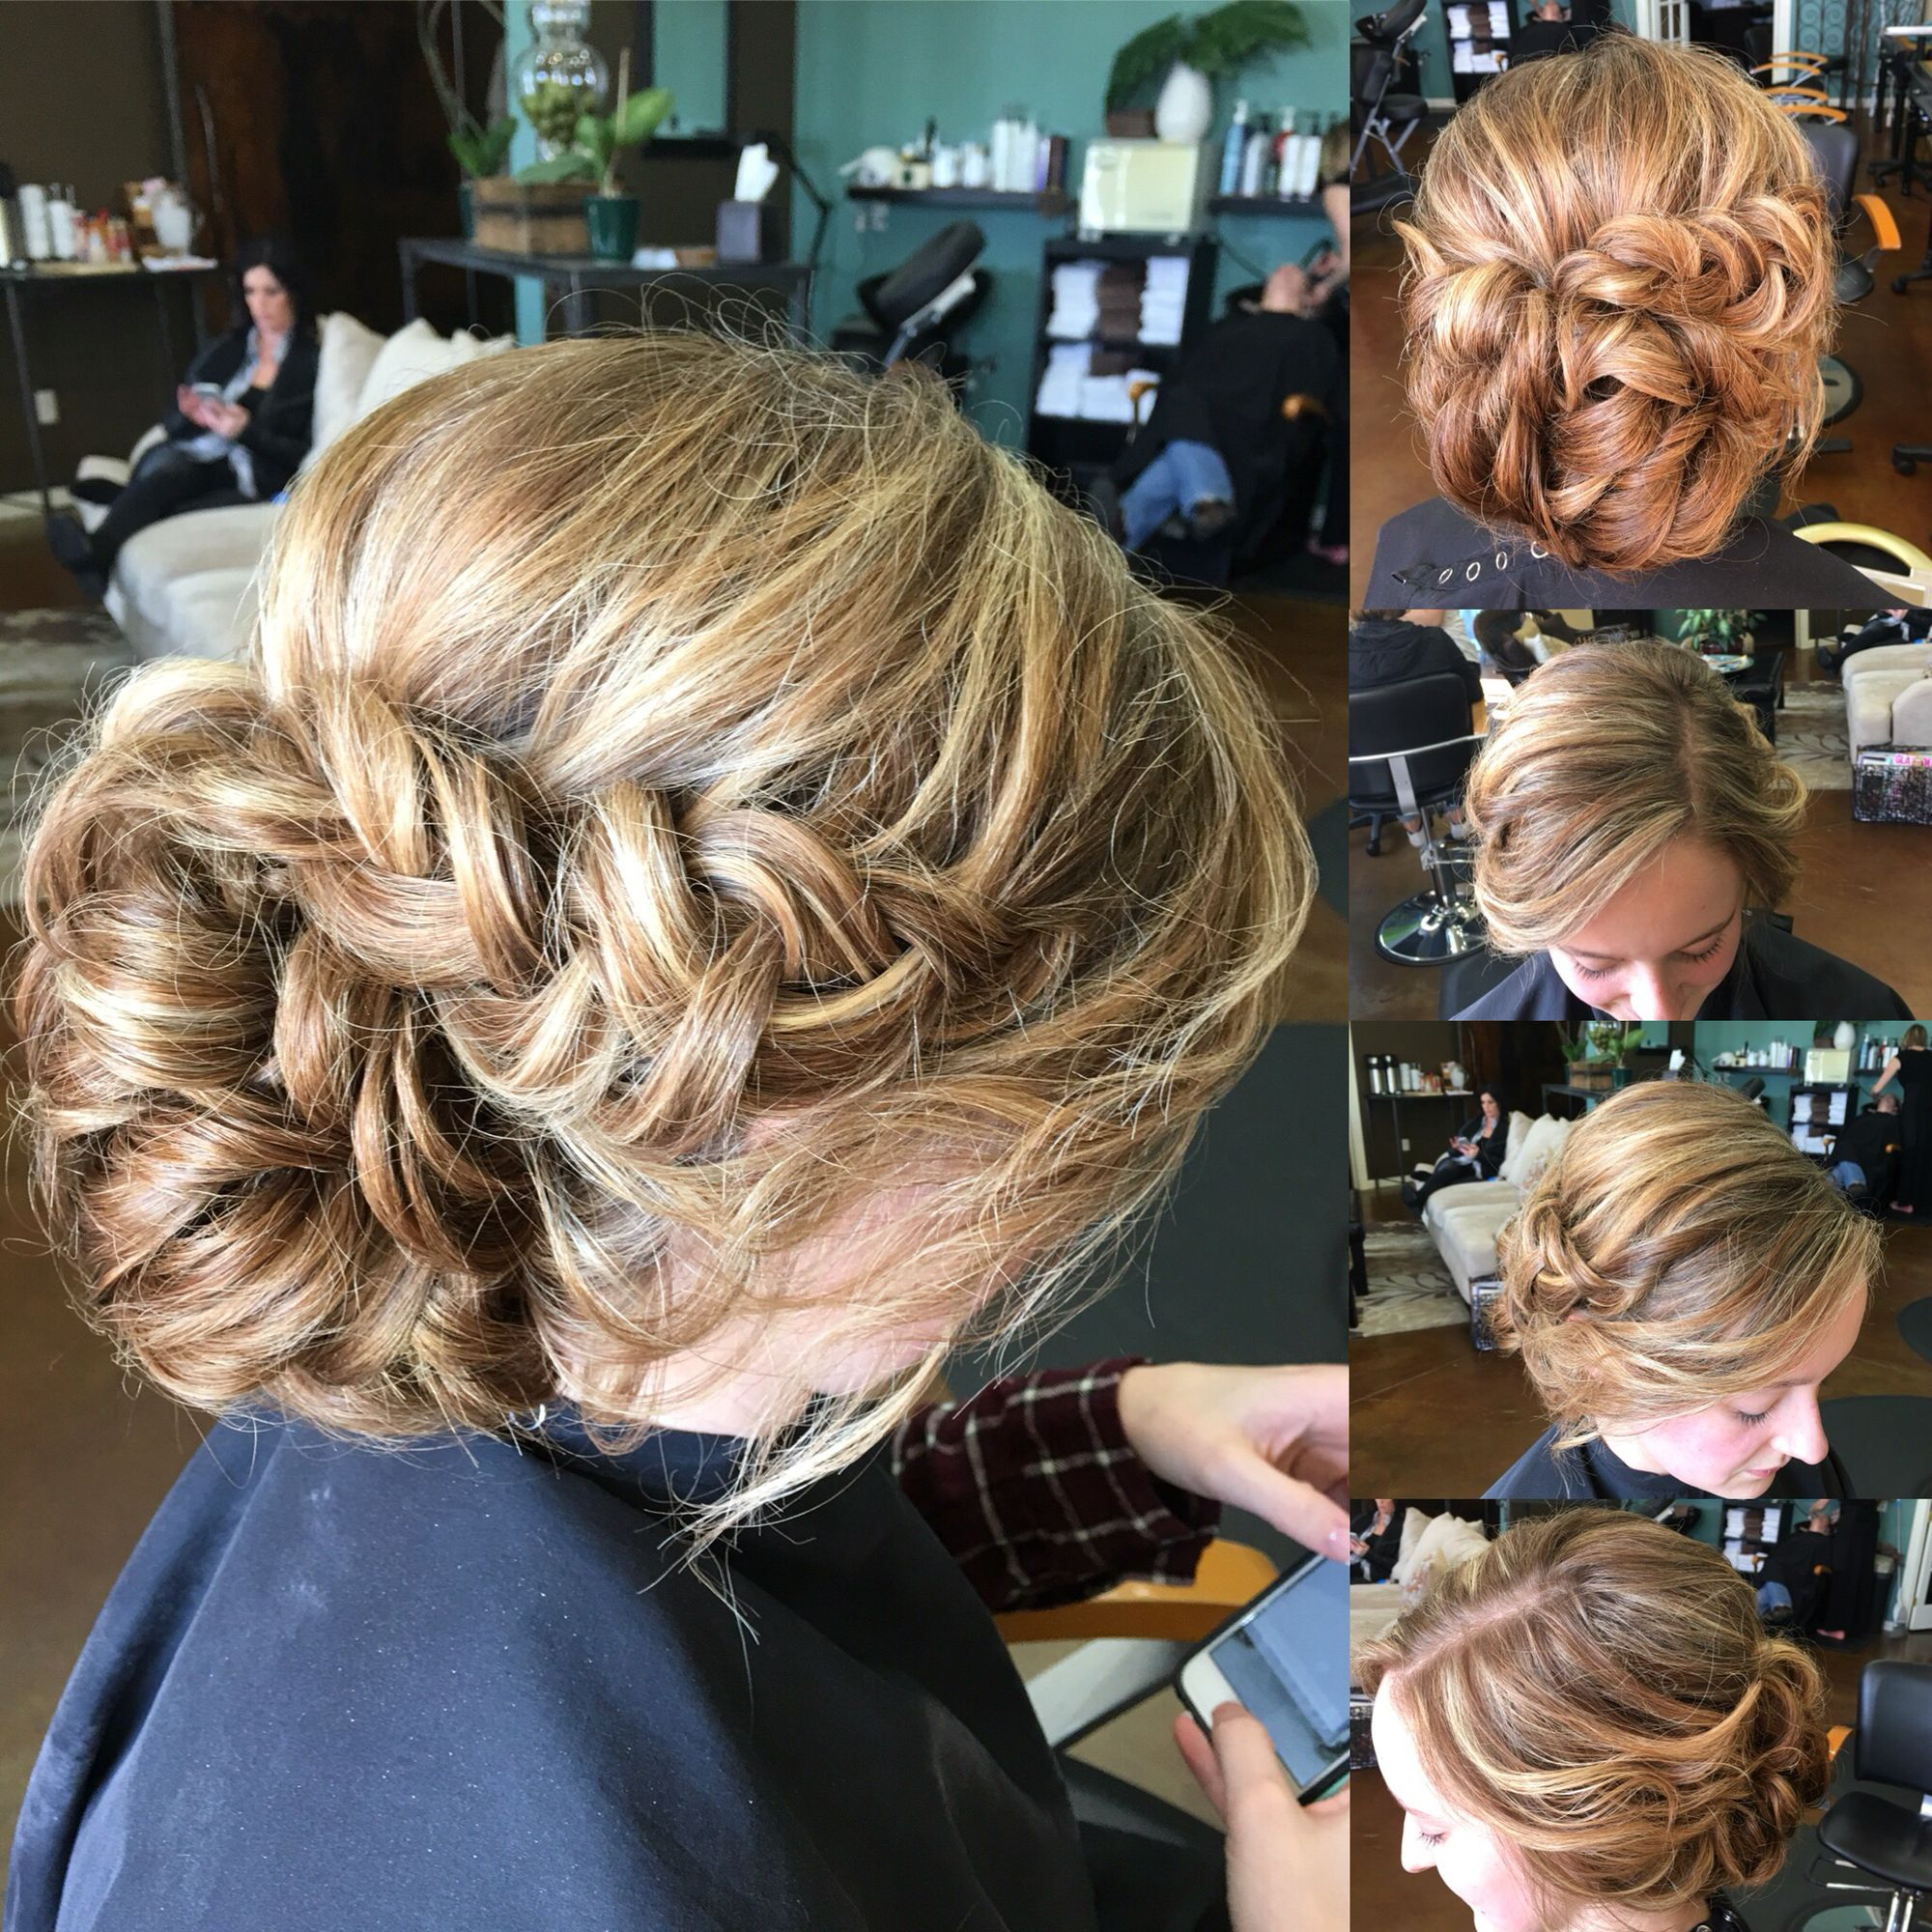 Loose low chignon/bun with side swept braid and pinned up ...